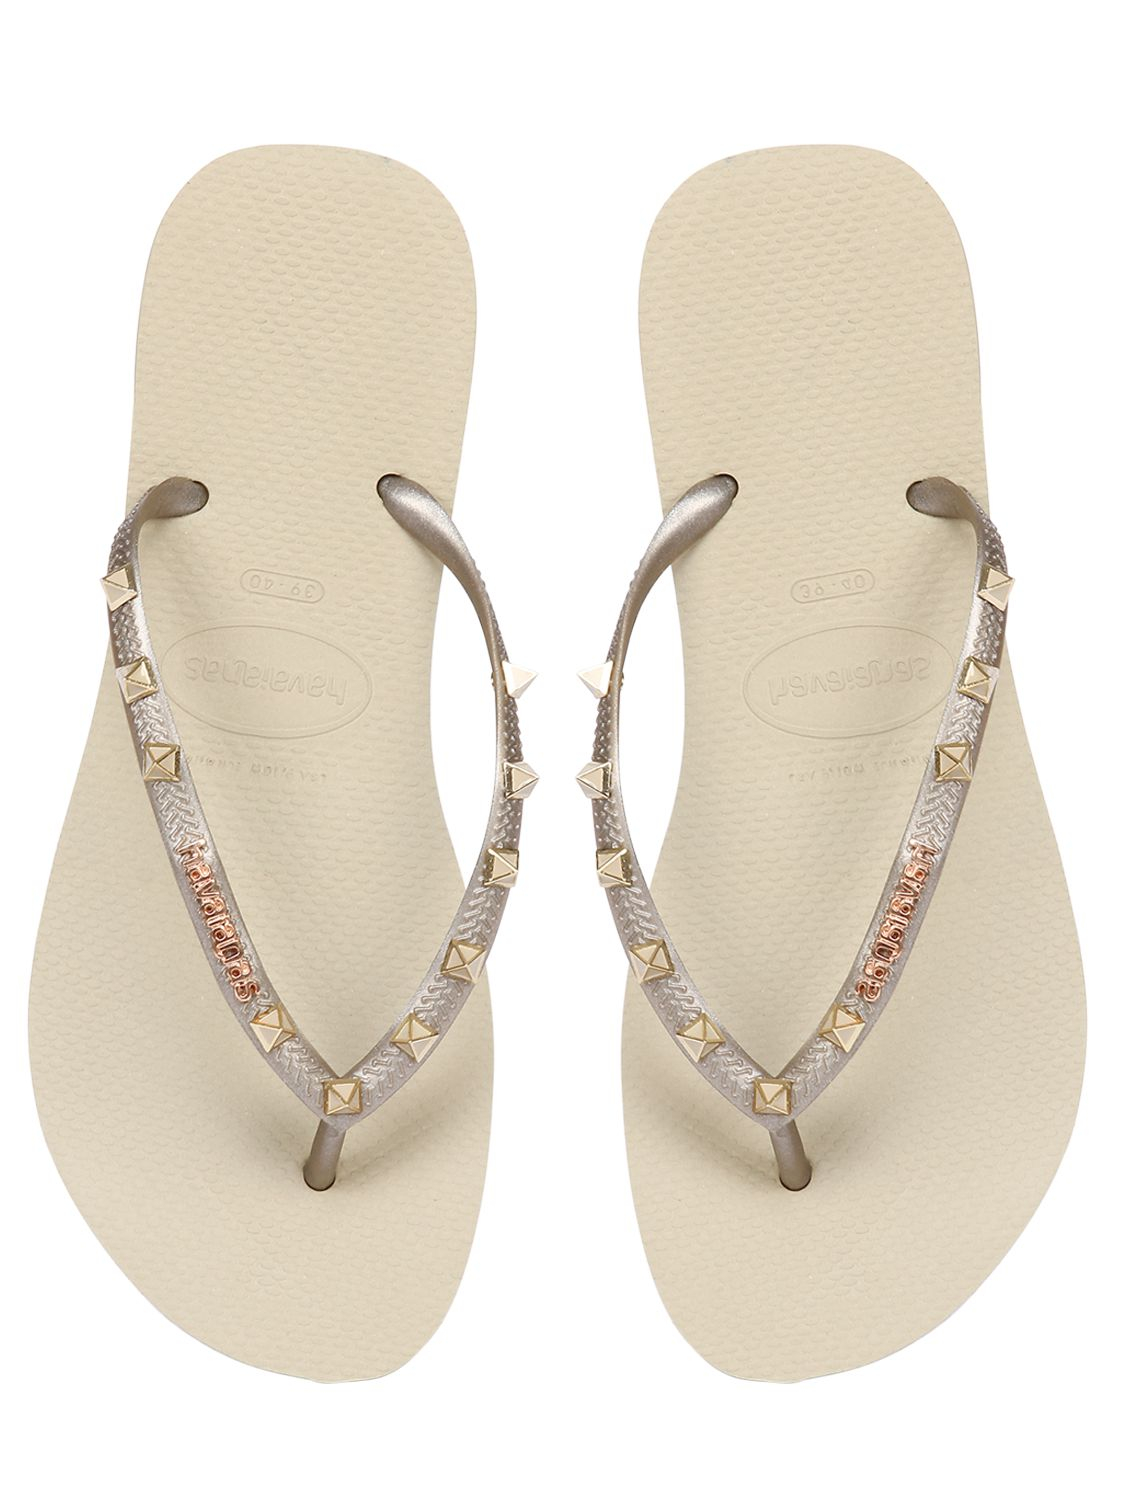 Havaianas Slim Pins Studded Rubber Flip Flops In Natural